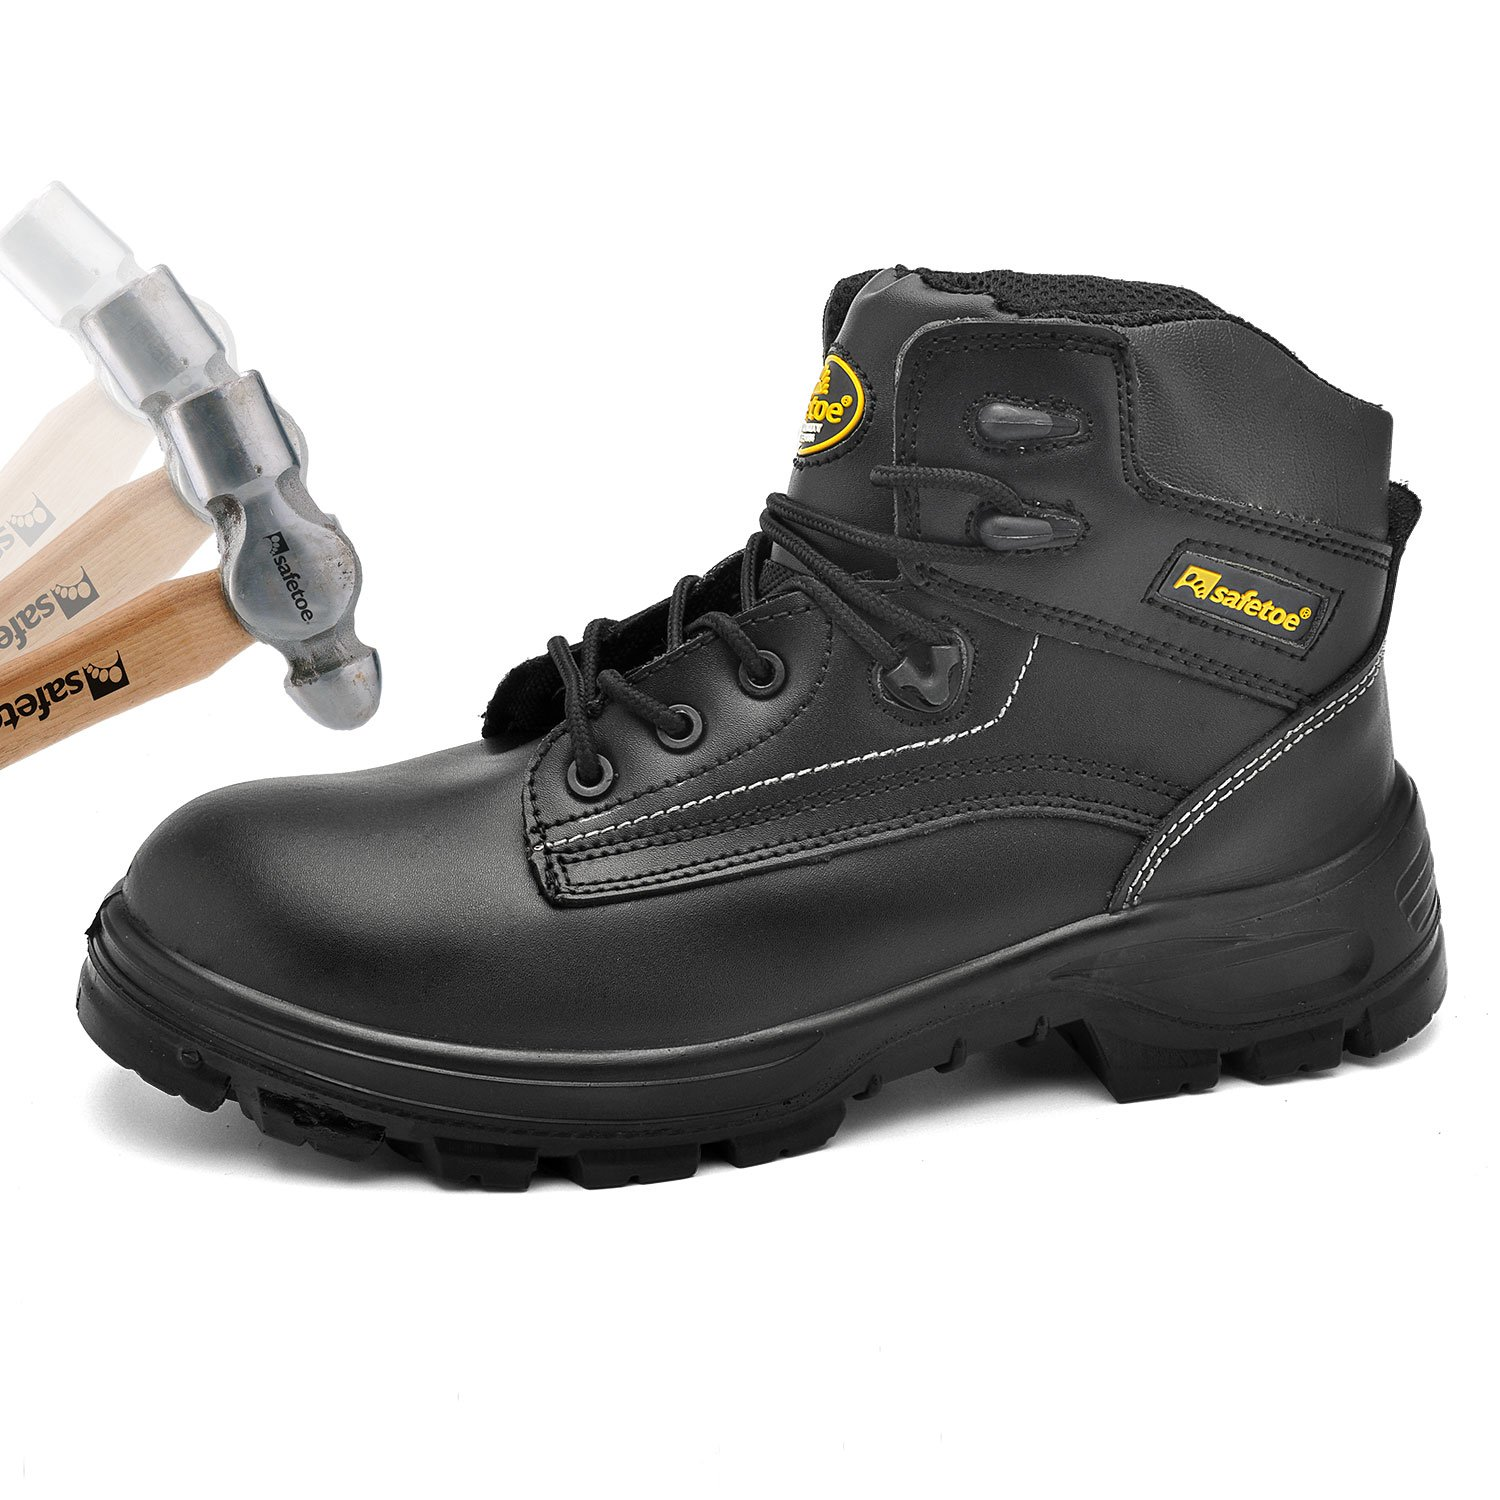 Safetoe Mens Safety Boots Work Shoes M8356b Black